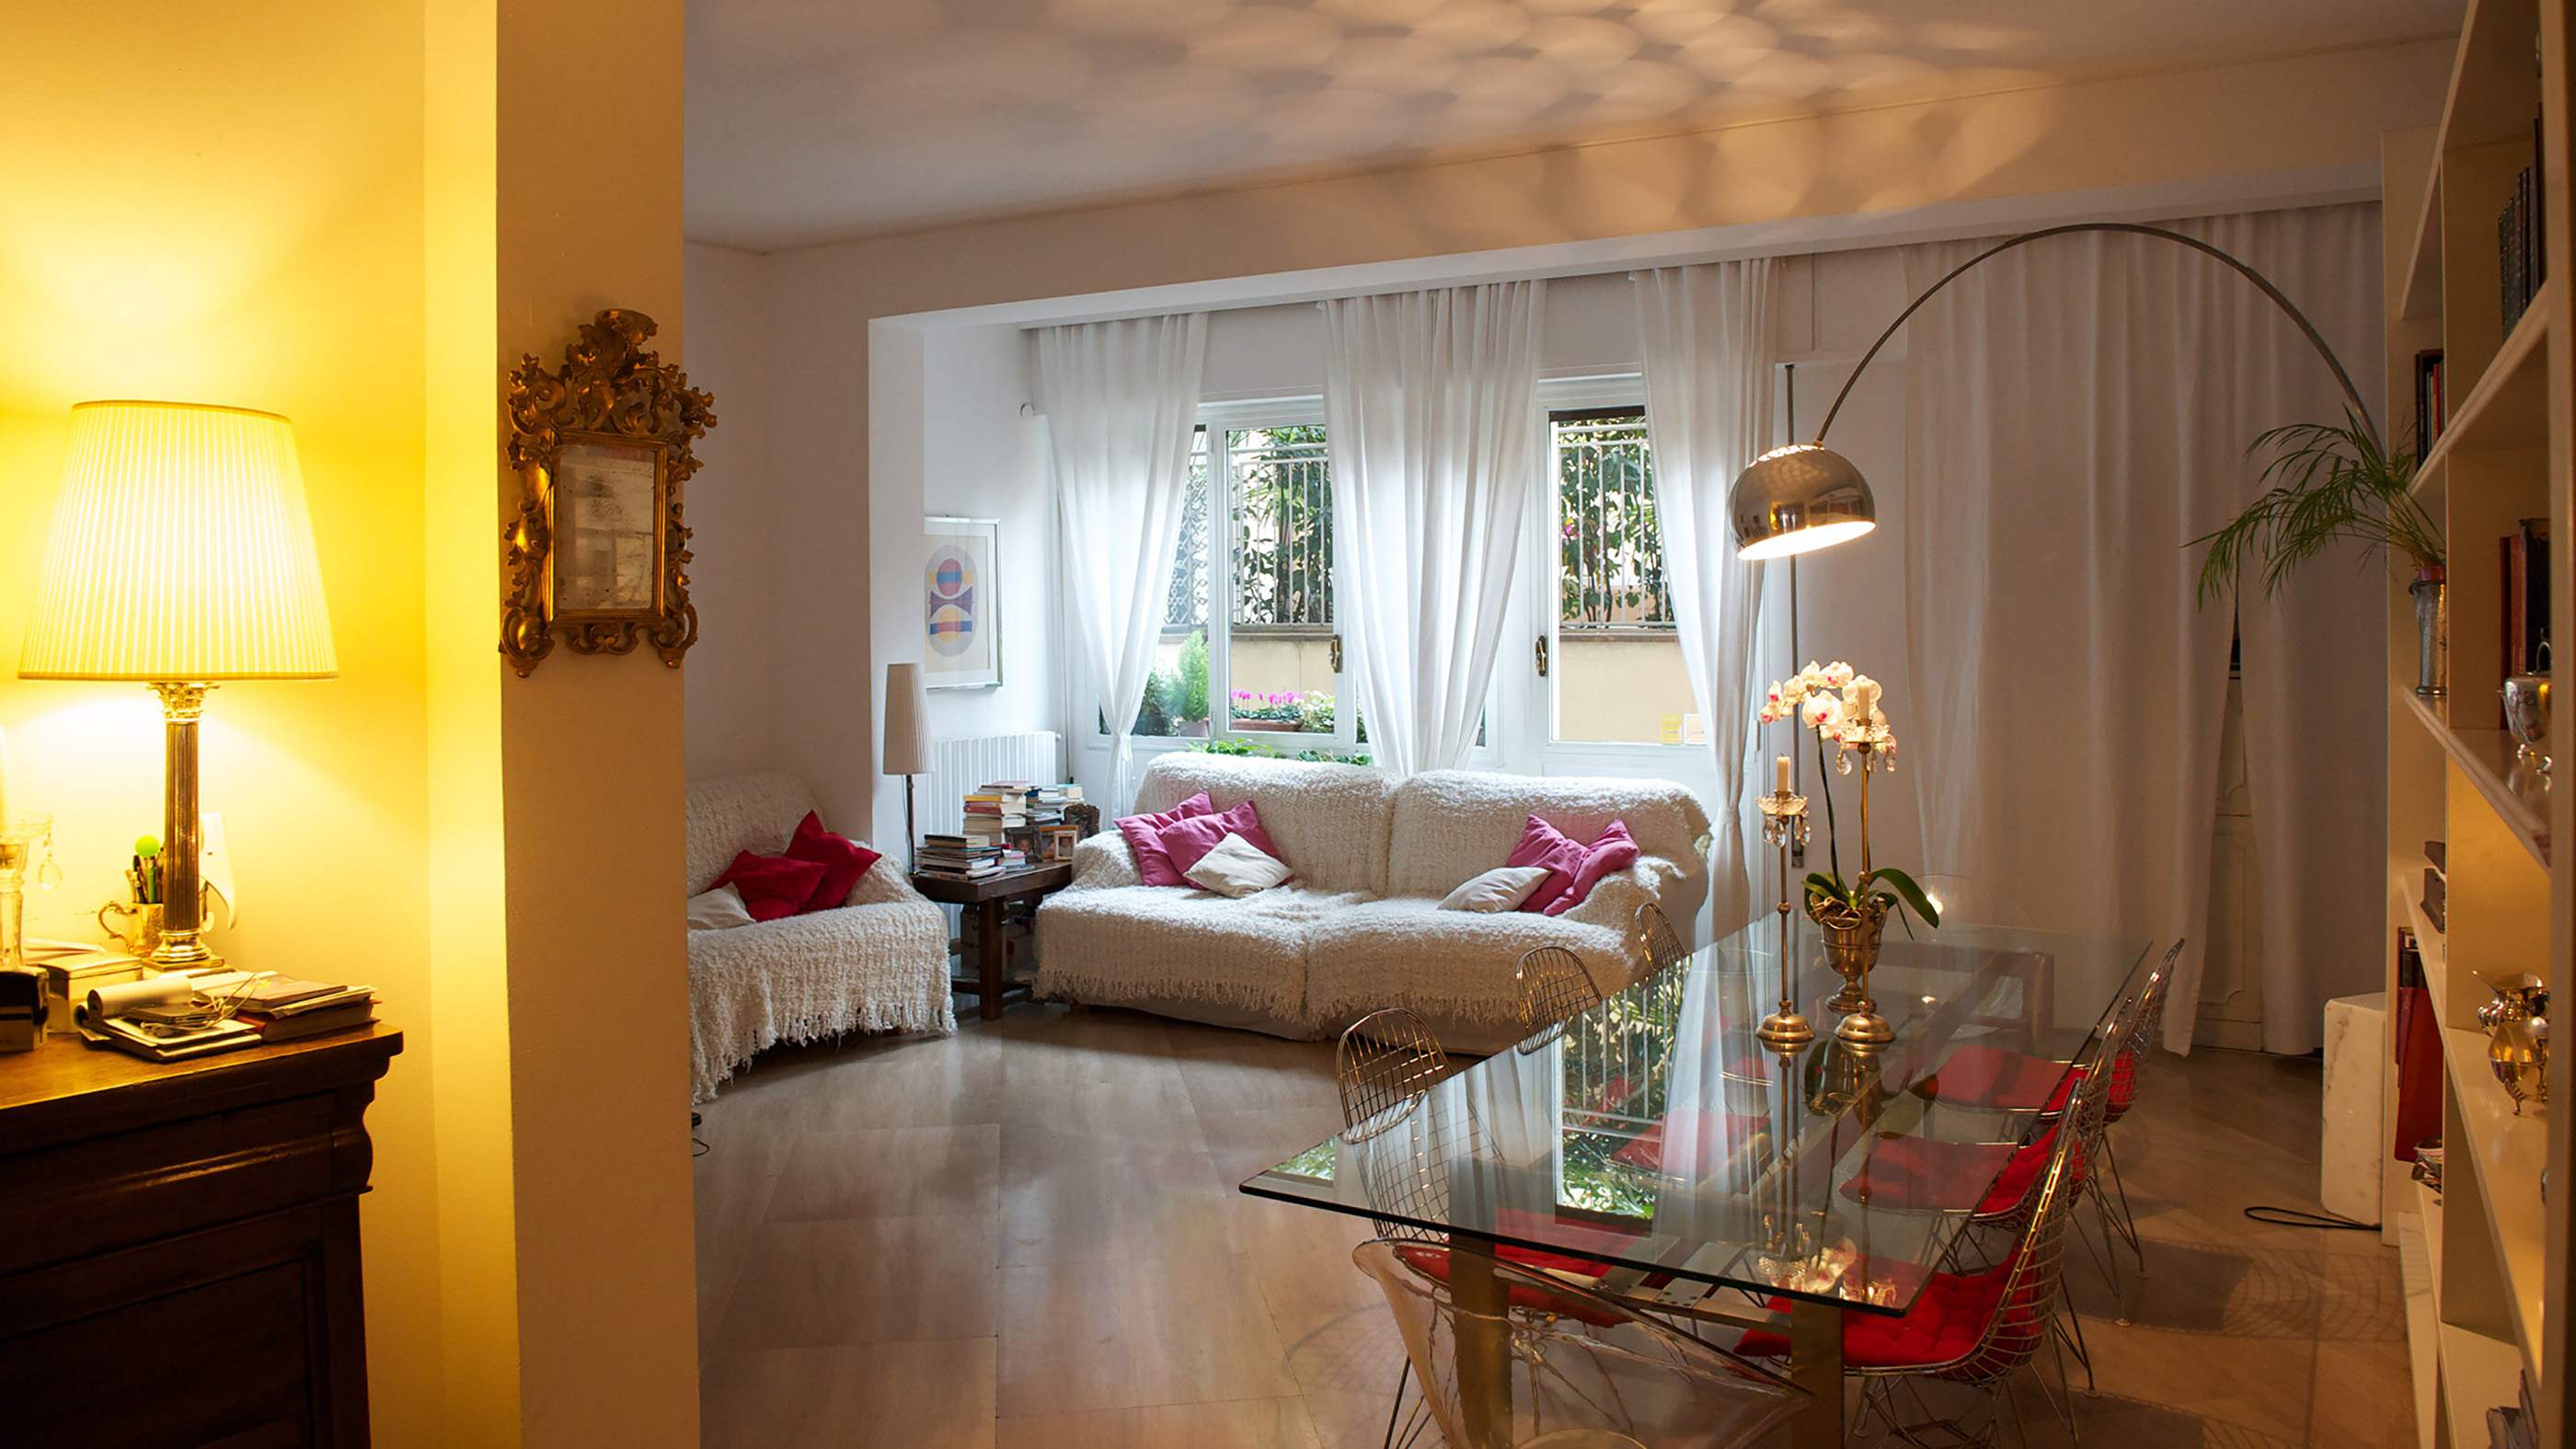 Cristina Rossi Bed and Breakfast B&B (Bologna) from £74